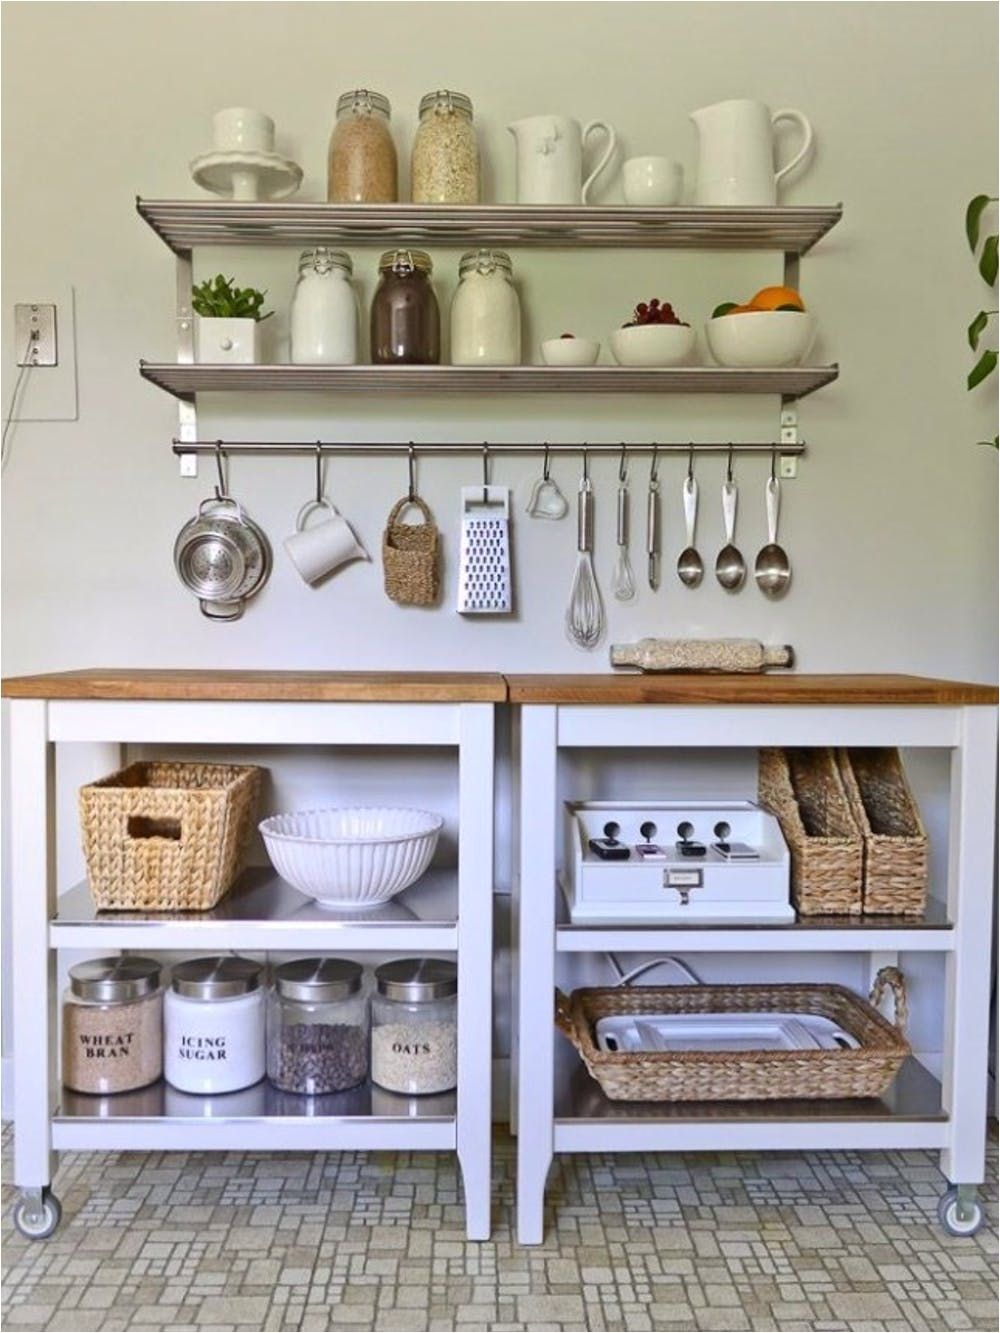 Ikea Hack Bakers Rack Kitchen Wall Storage Apartment Kitchen